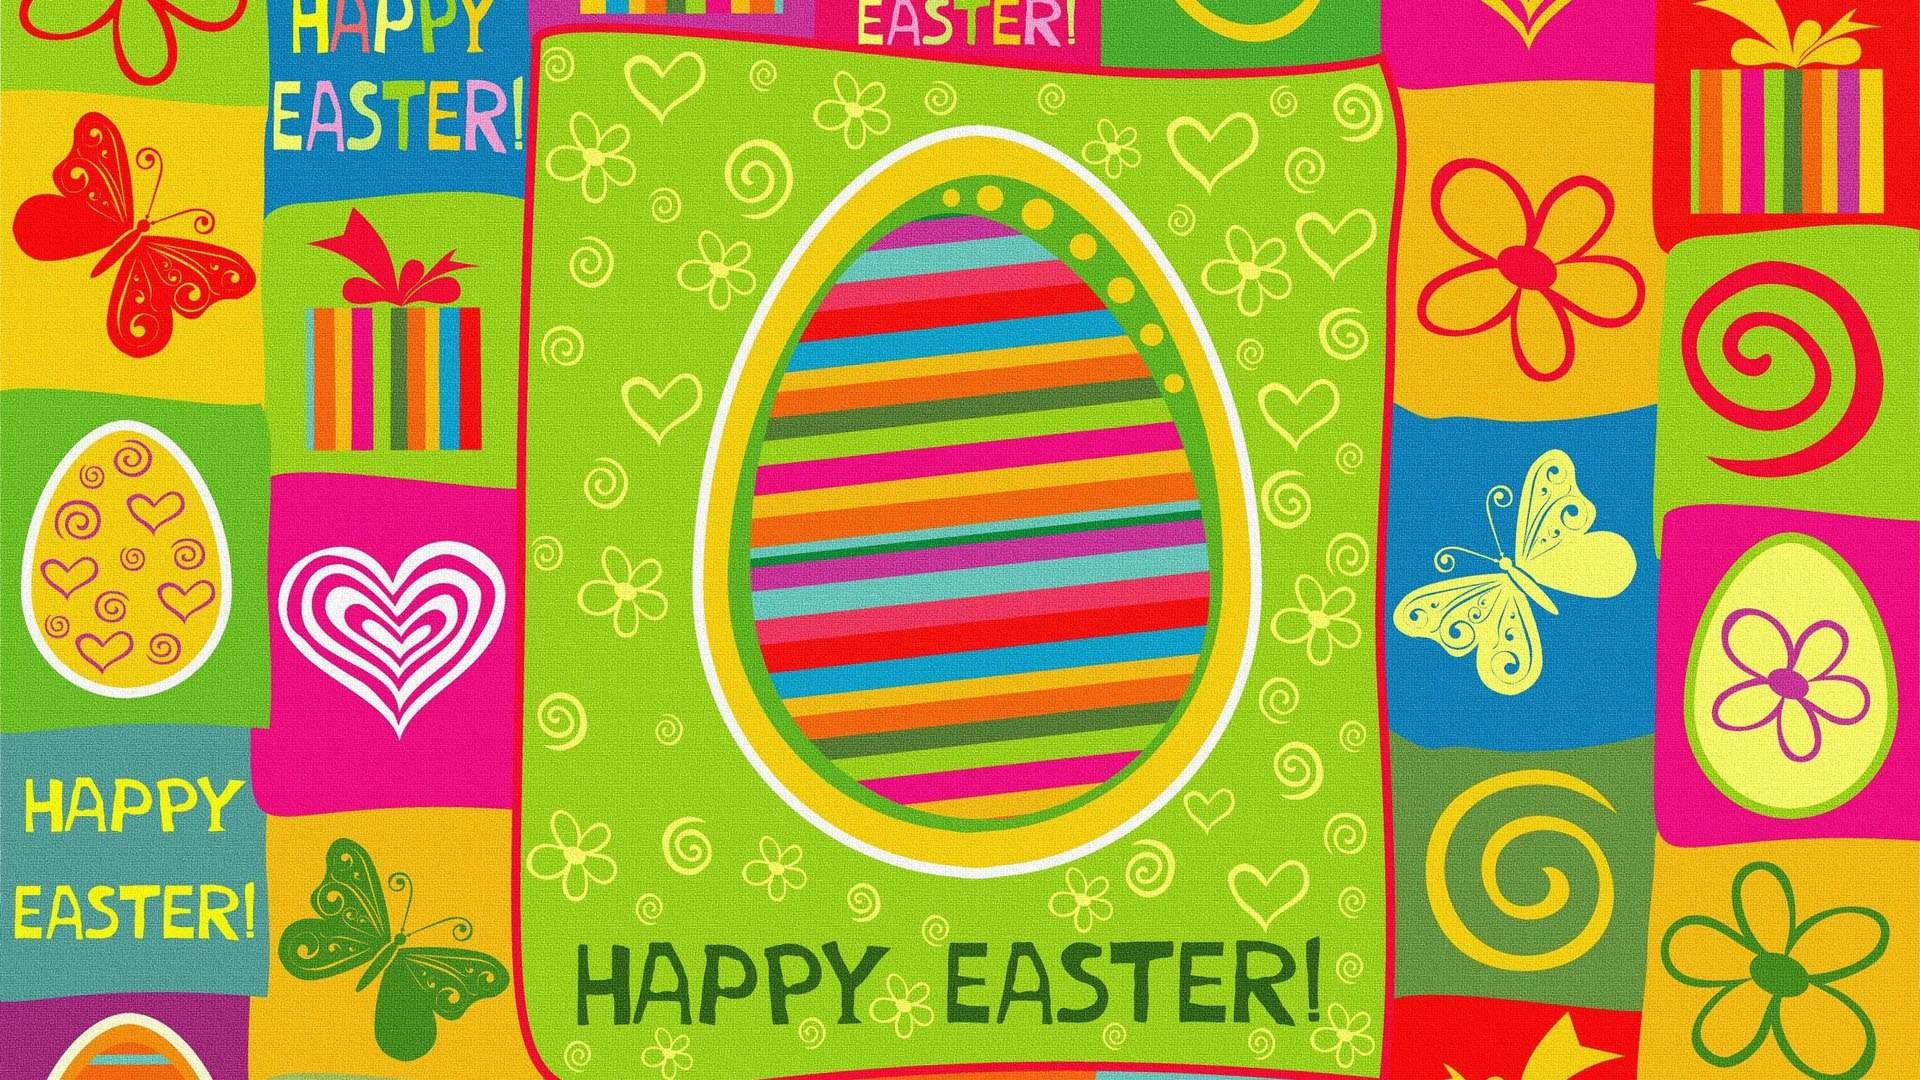 1920x1080 Download Colorful Happy Easter Wallpaper | Full HD Wallpapers